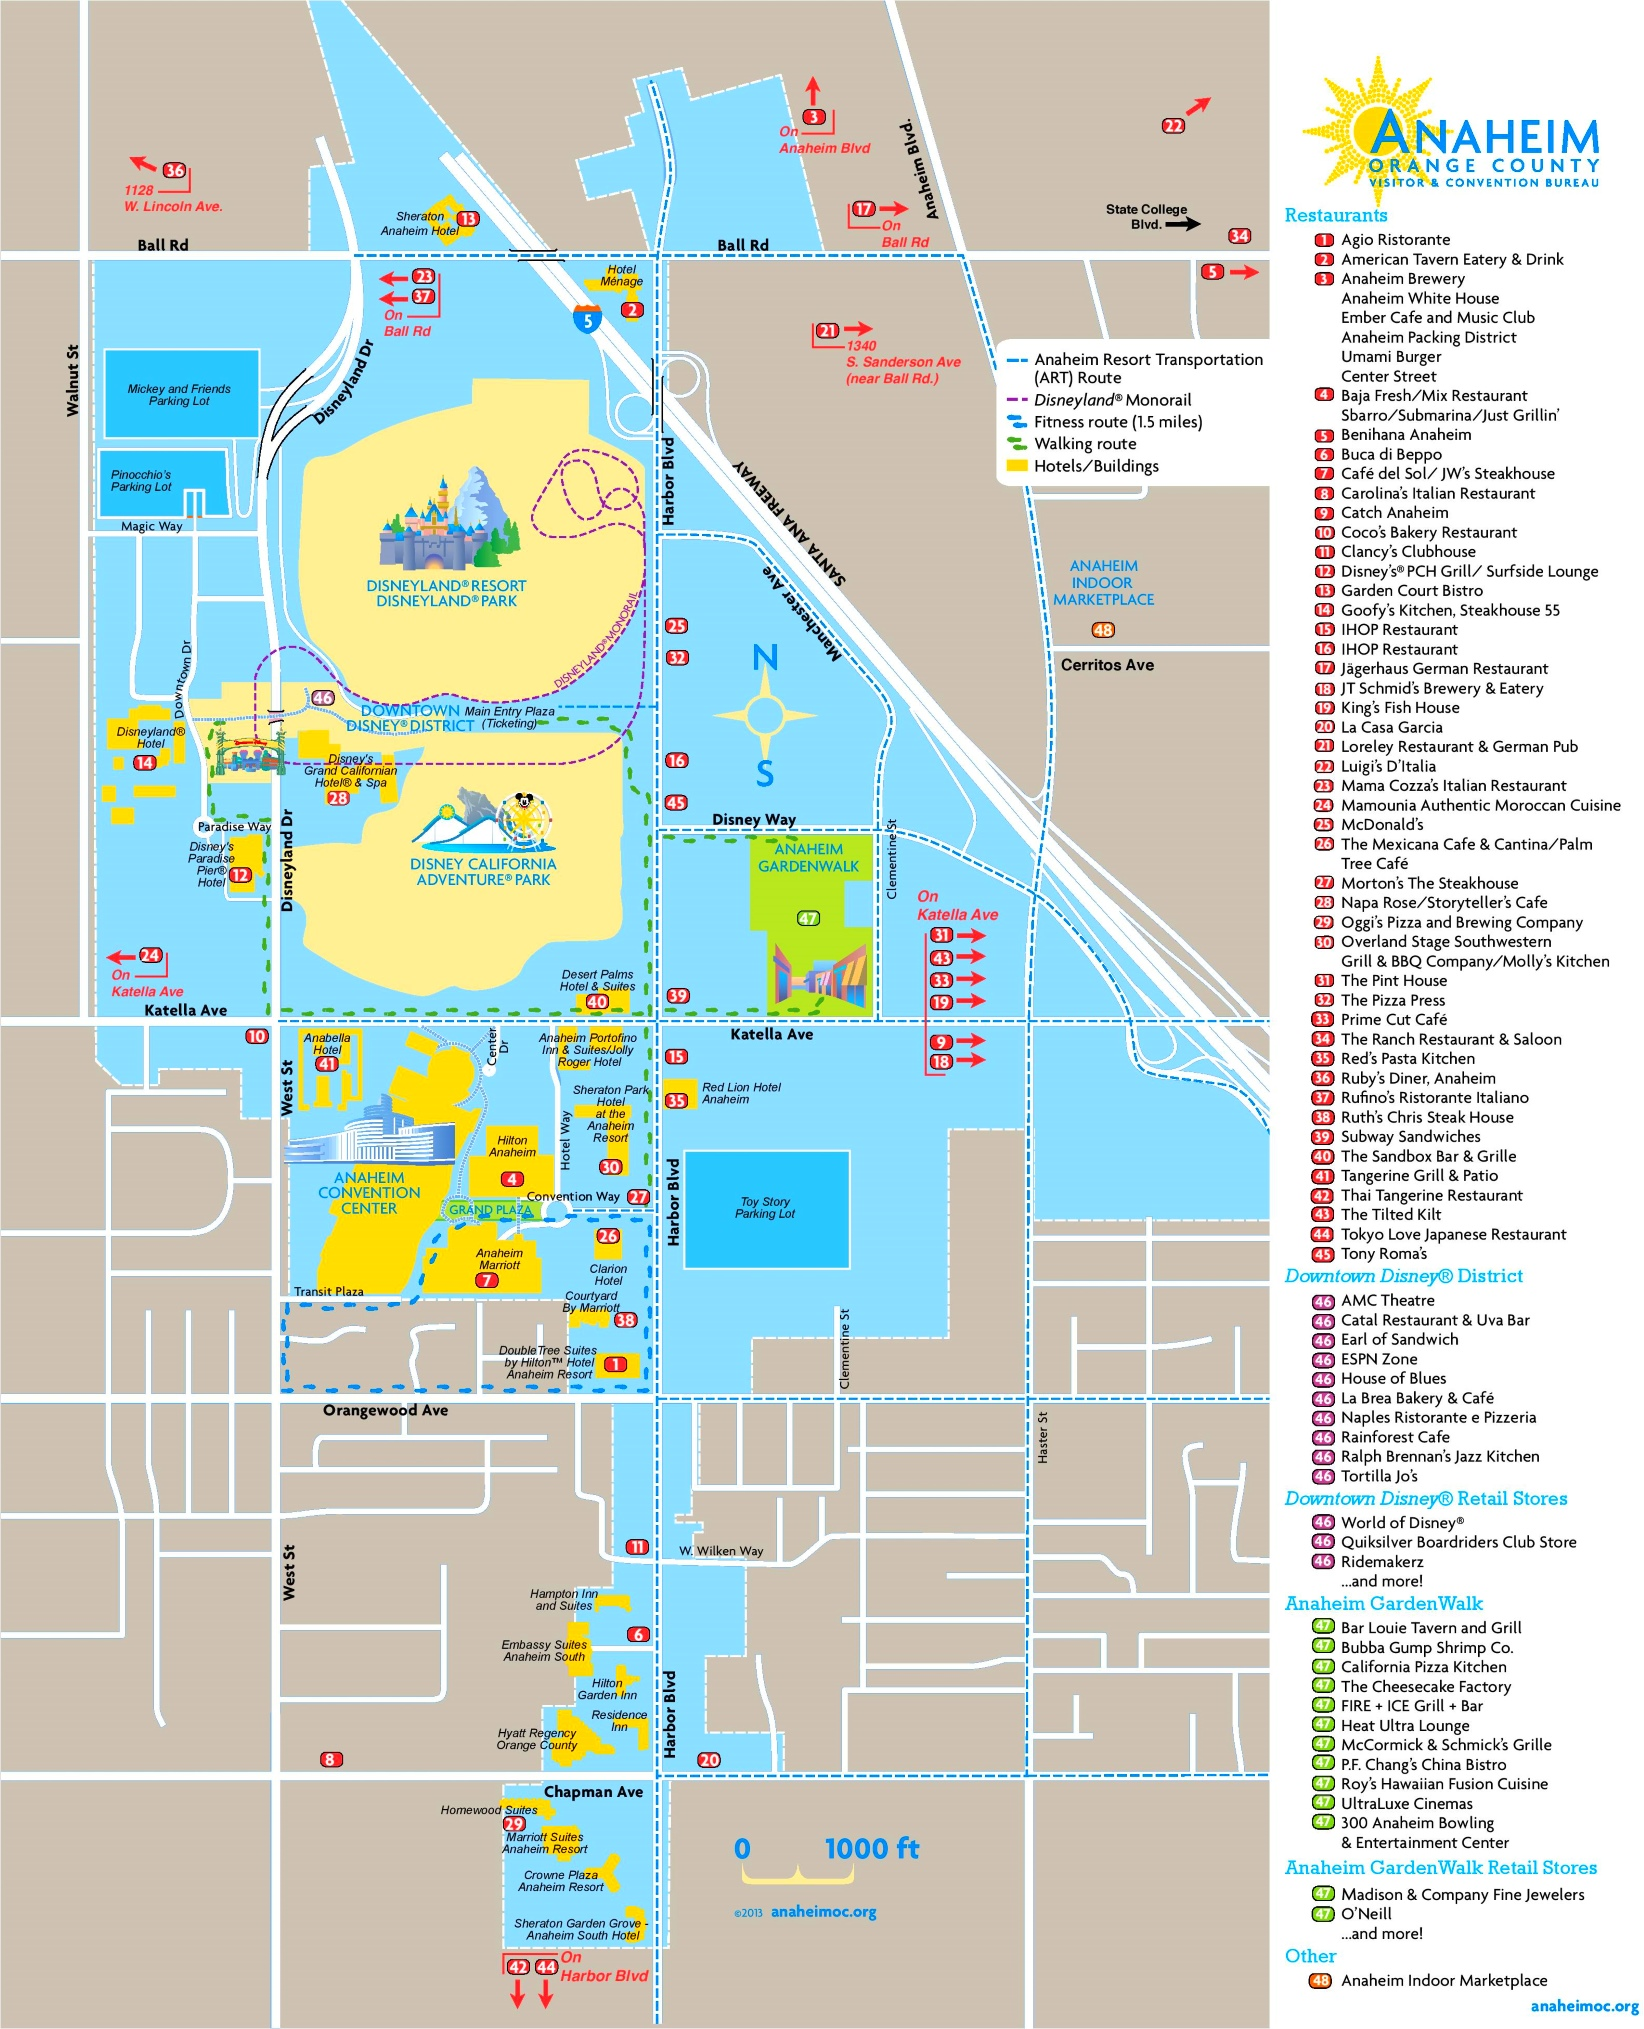 Anaheim tourist attractions map